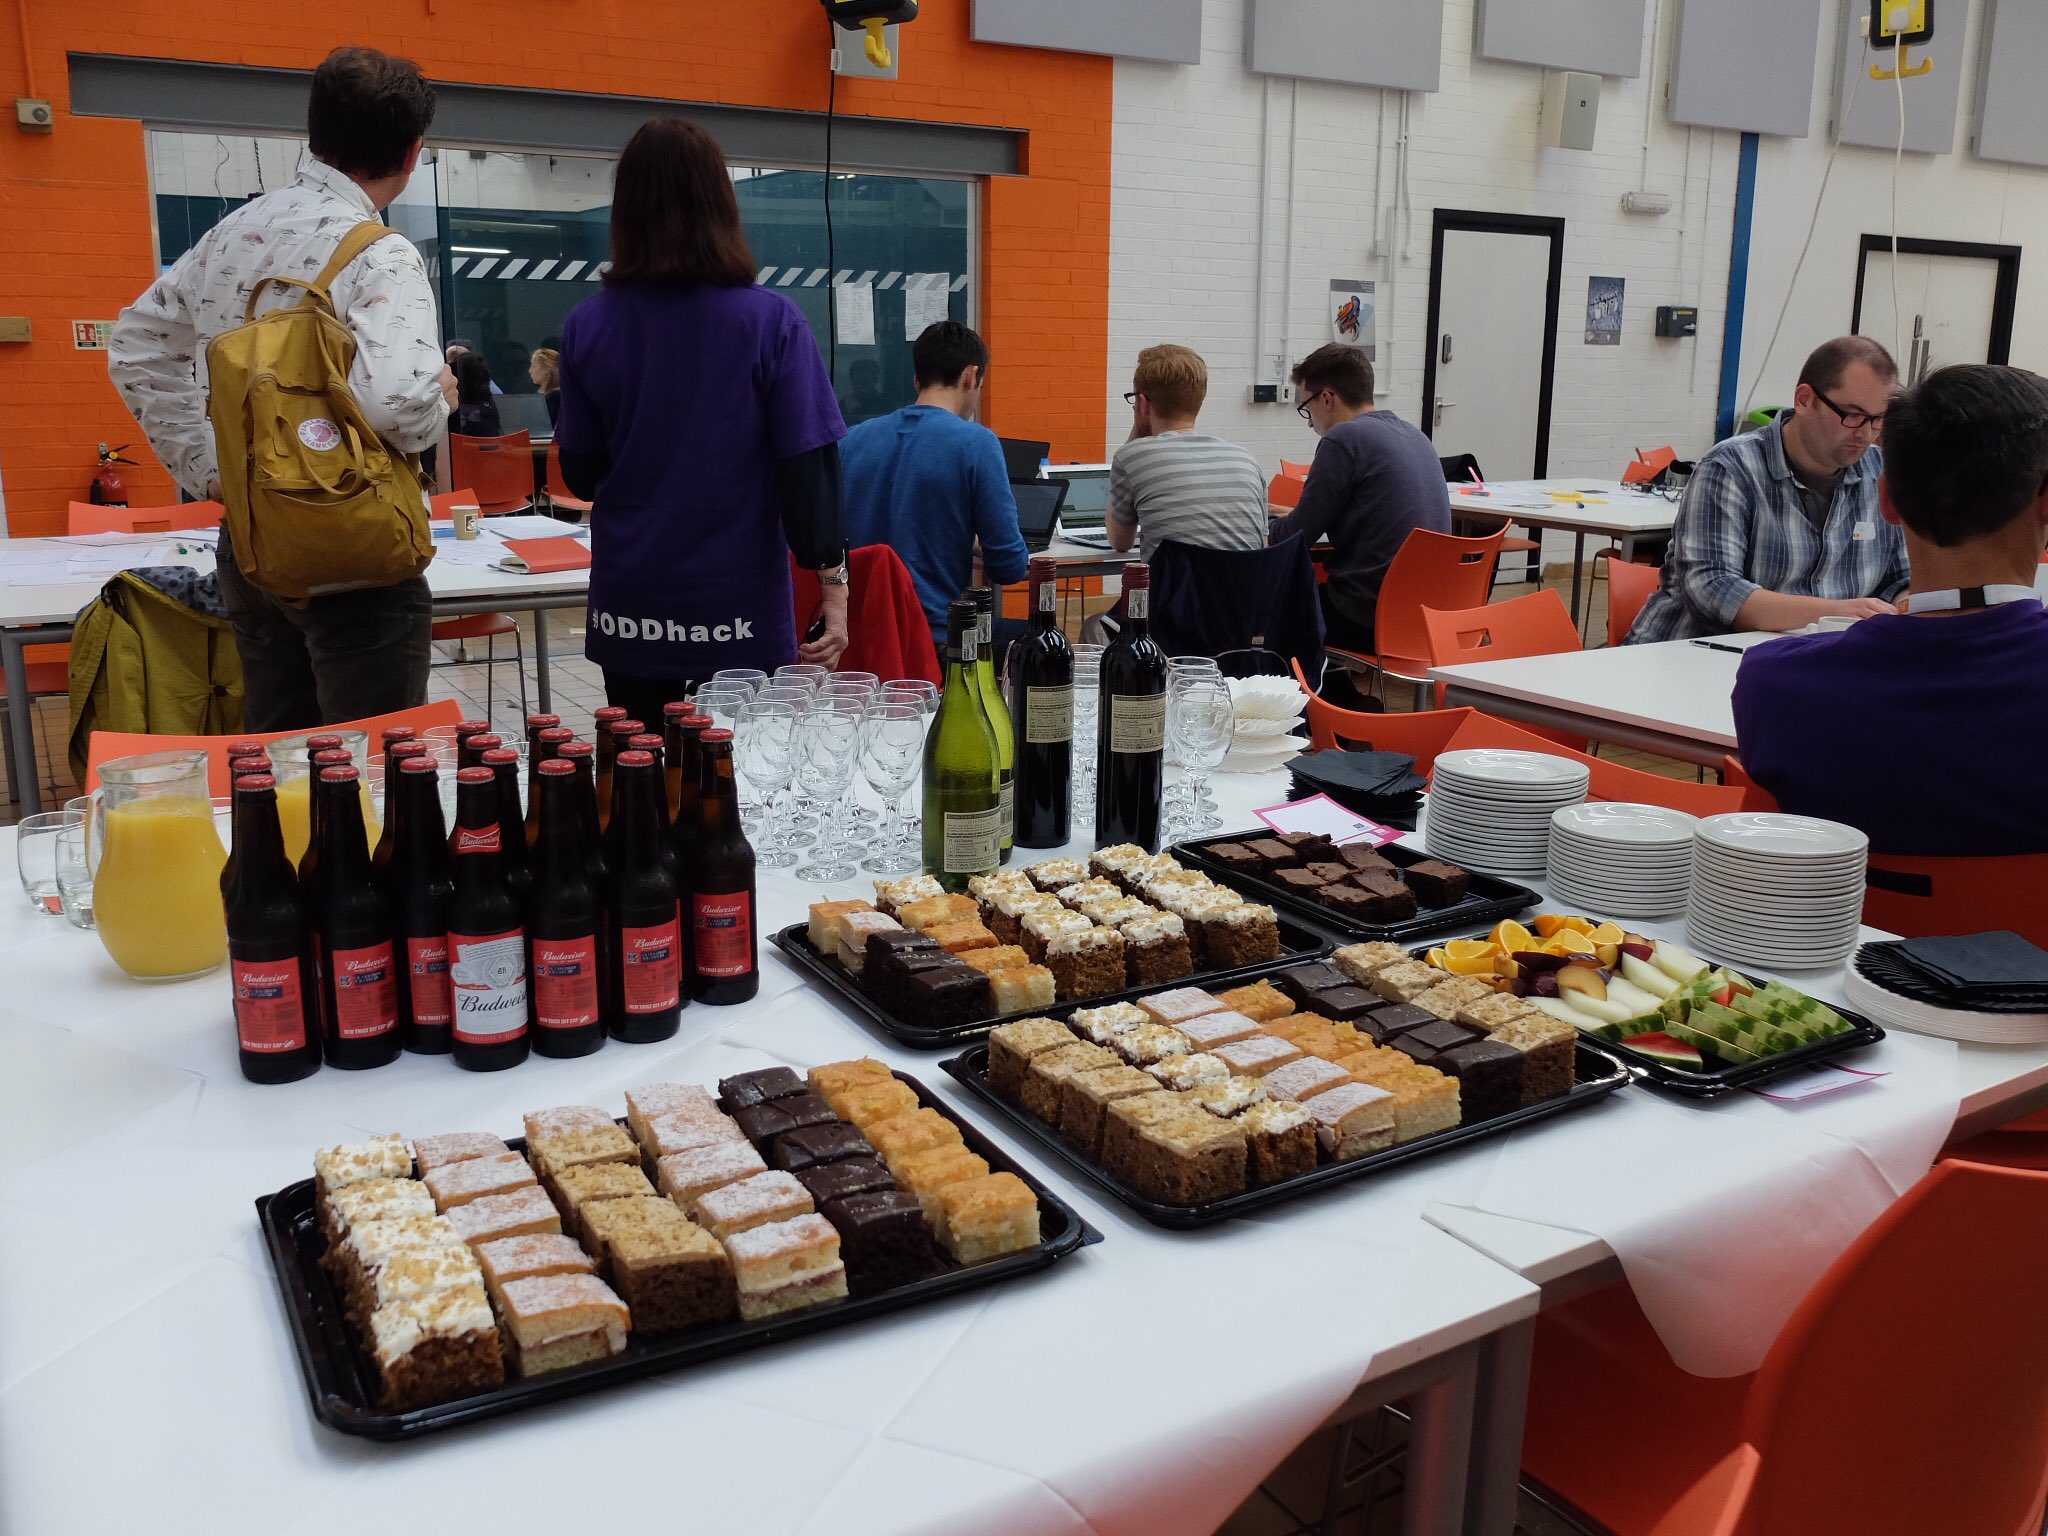 Refreshments have arrived to keep us going for the final stretch of the #UKDSDataDive #ODDhack @UKDataService https://t.co/ZCCwFMFgBC